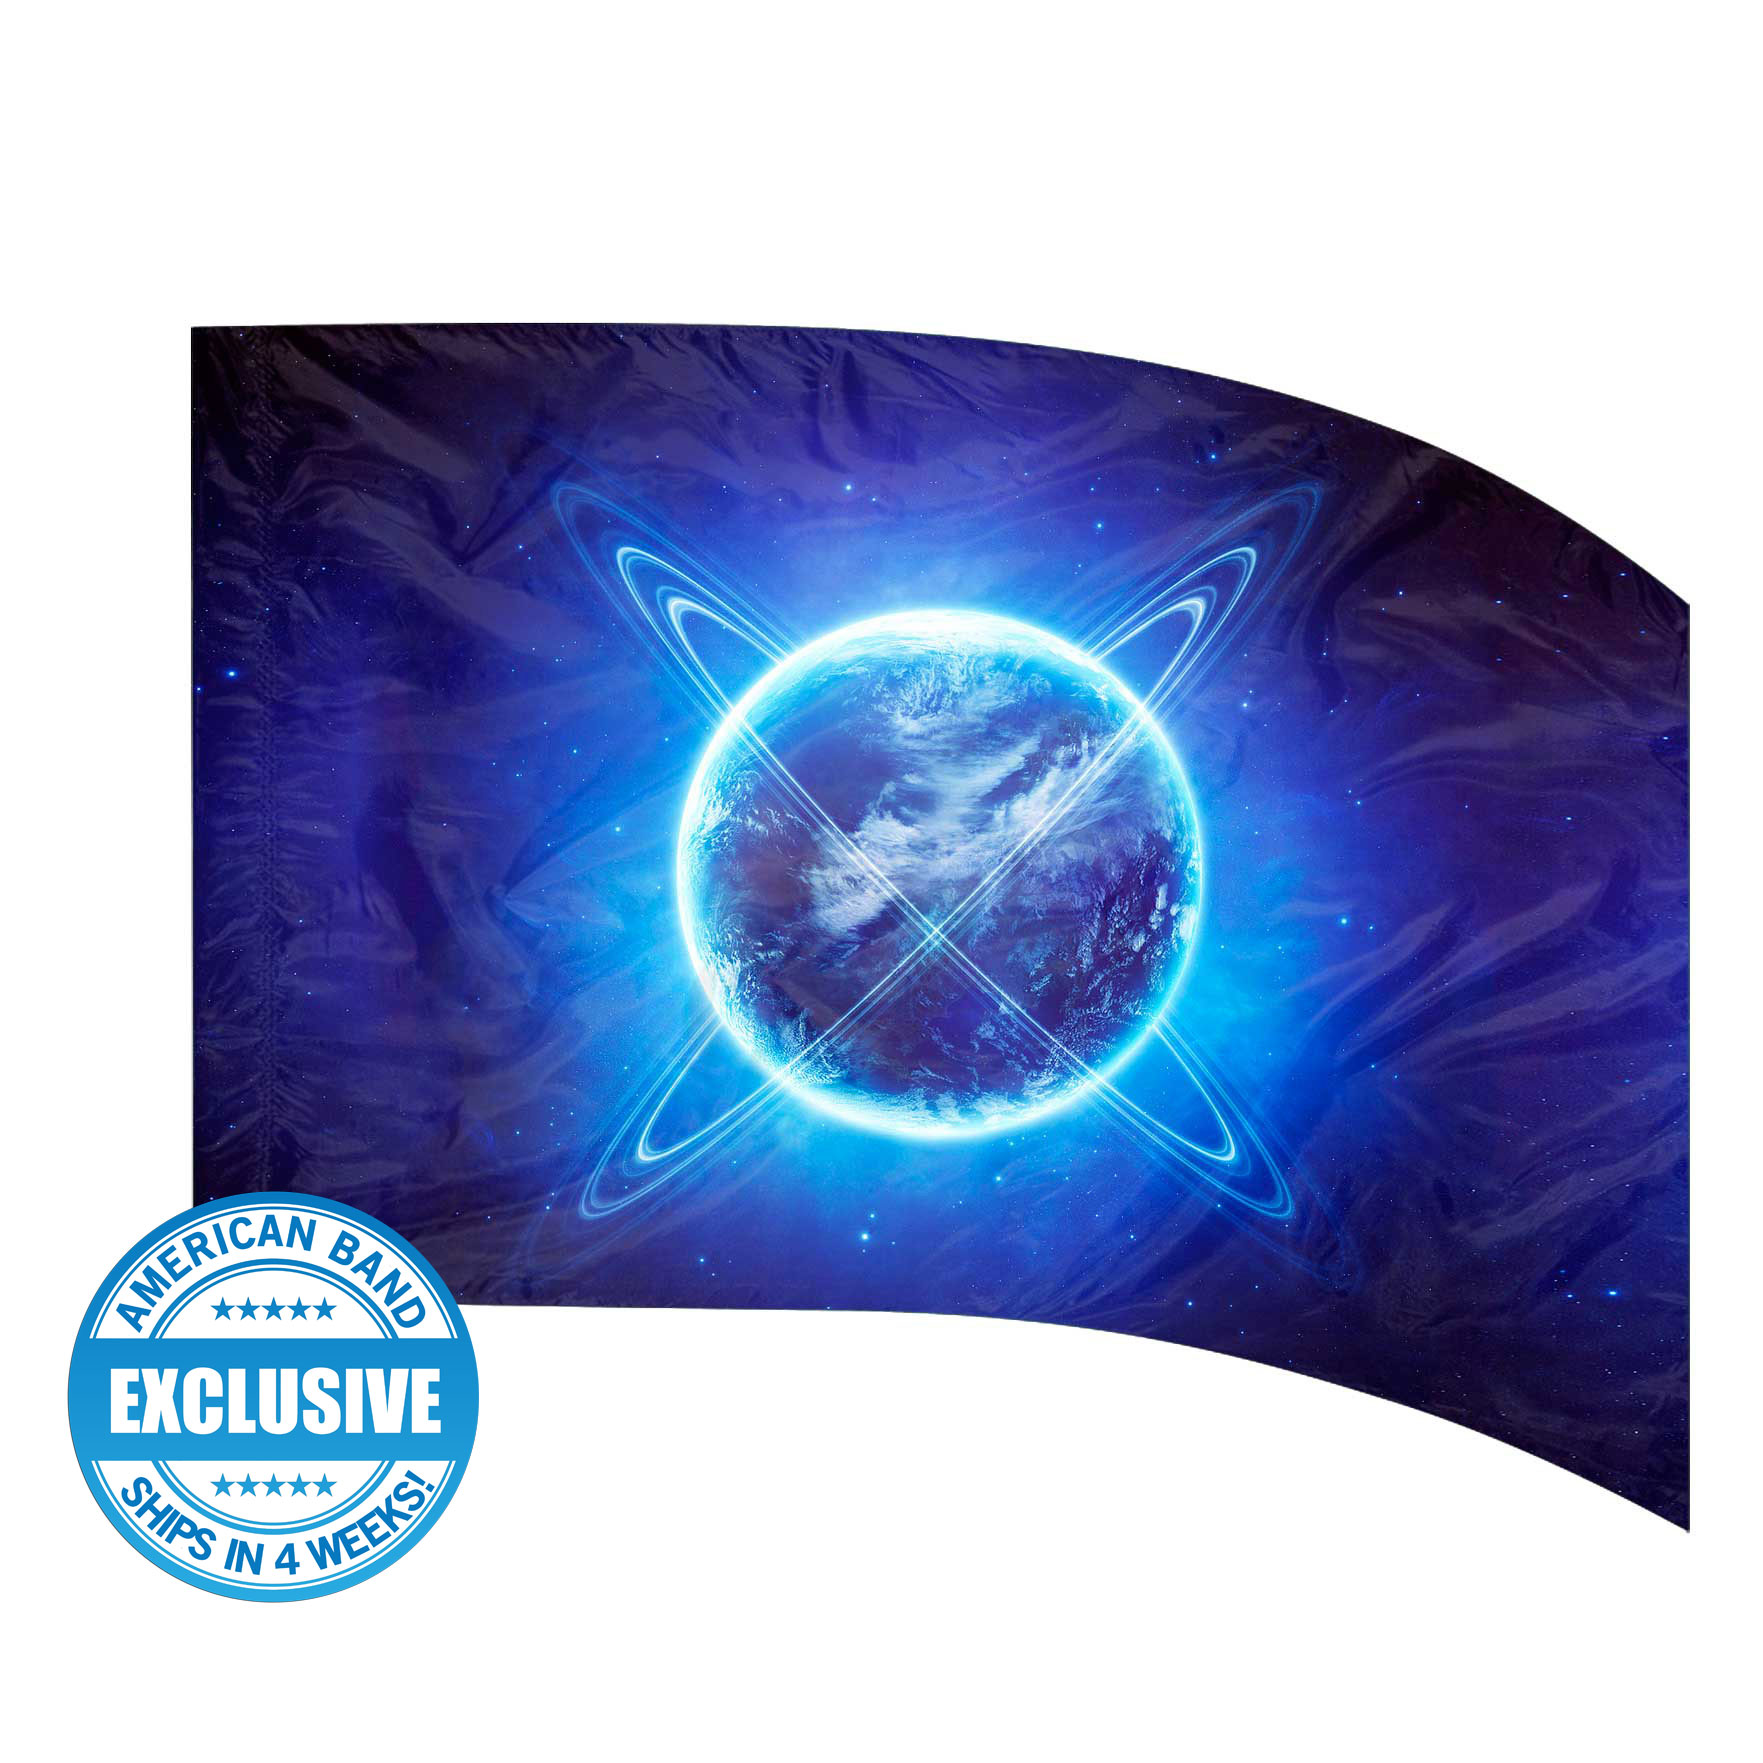 Made-to-Order Digital Cosmos Flags: Style 3